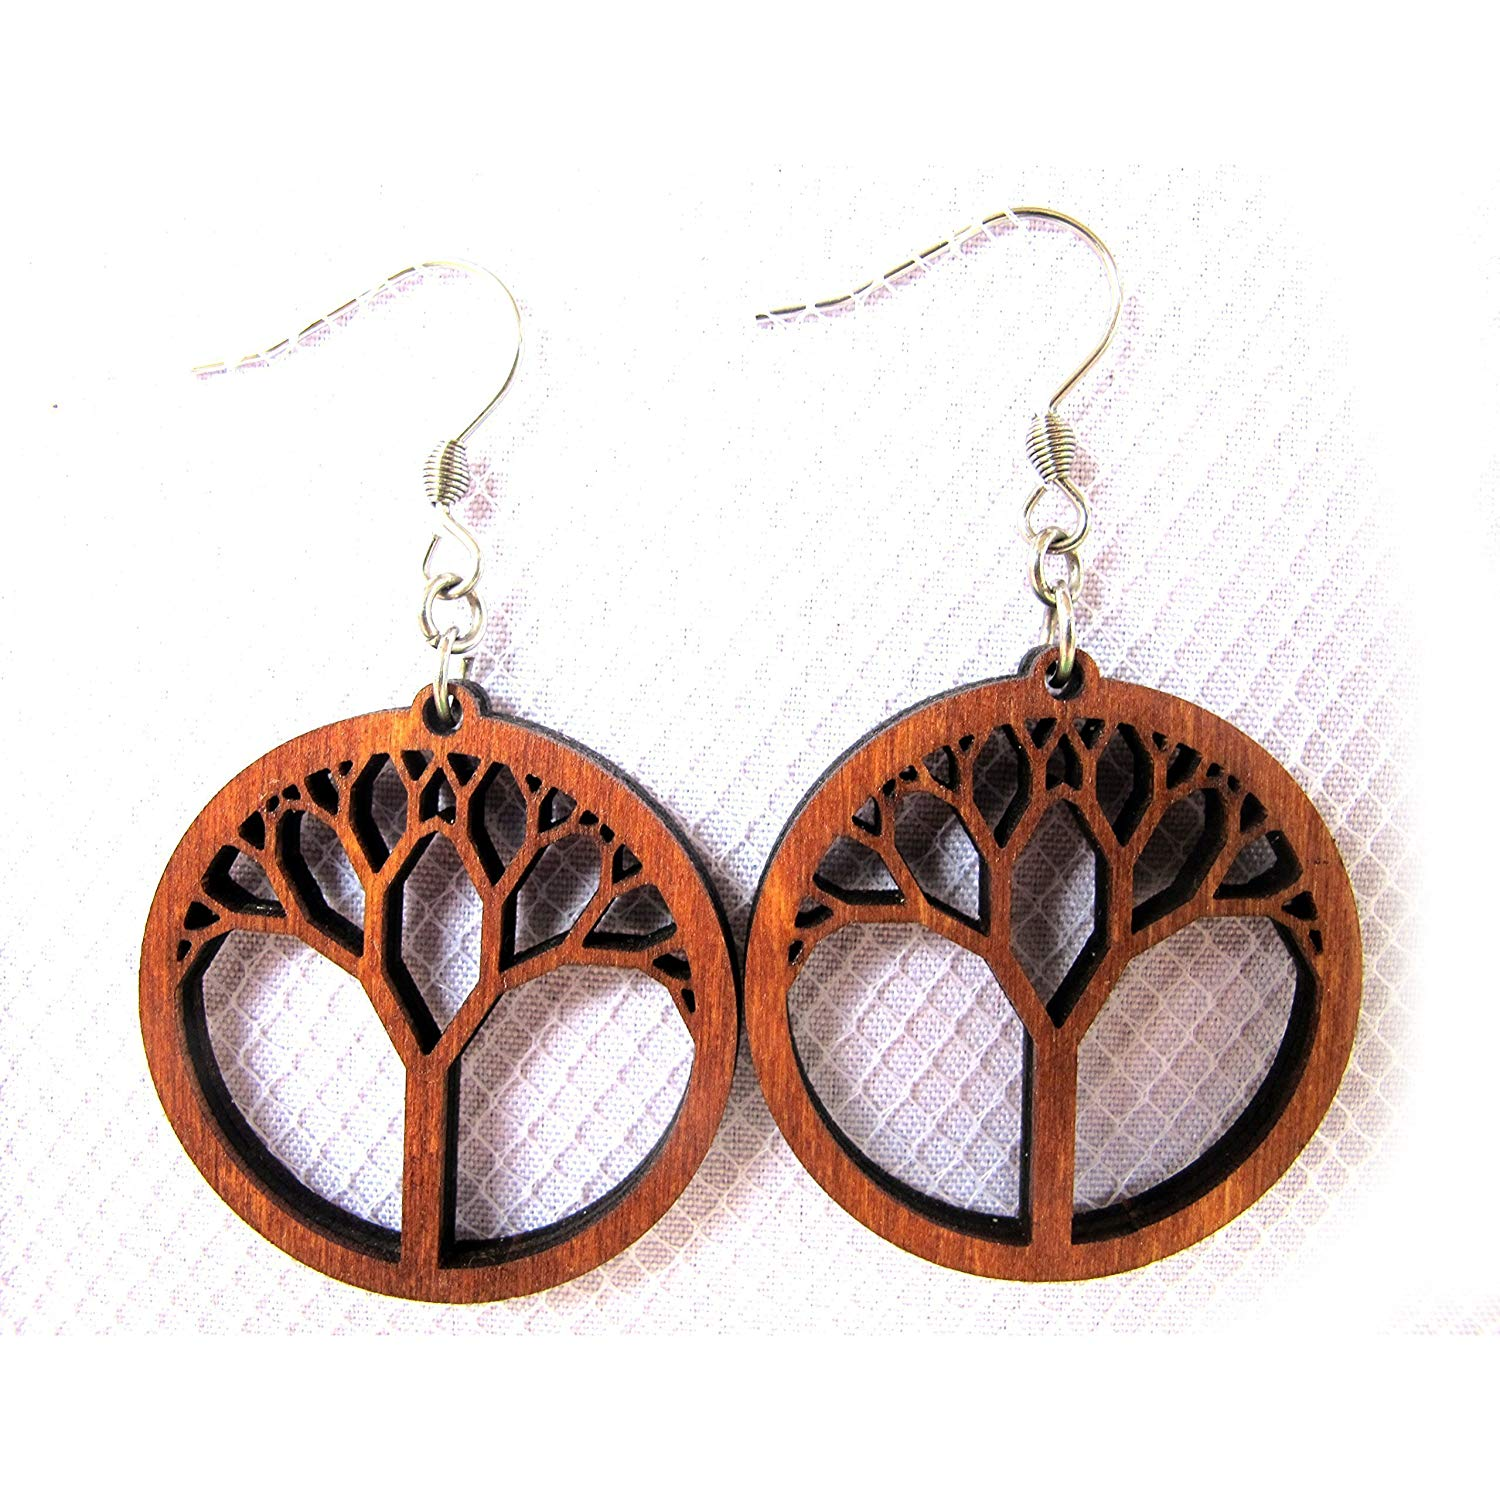 "Wooden Earrings""Tree of Life"", Laser Cut Hoop earrings with hypoallergenic ear wire, Yoga Spiritual jewelry"